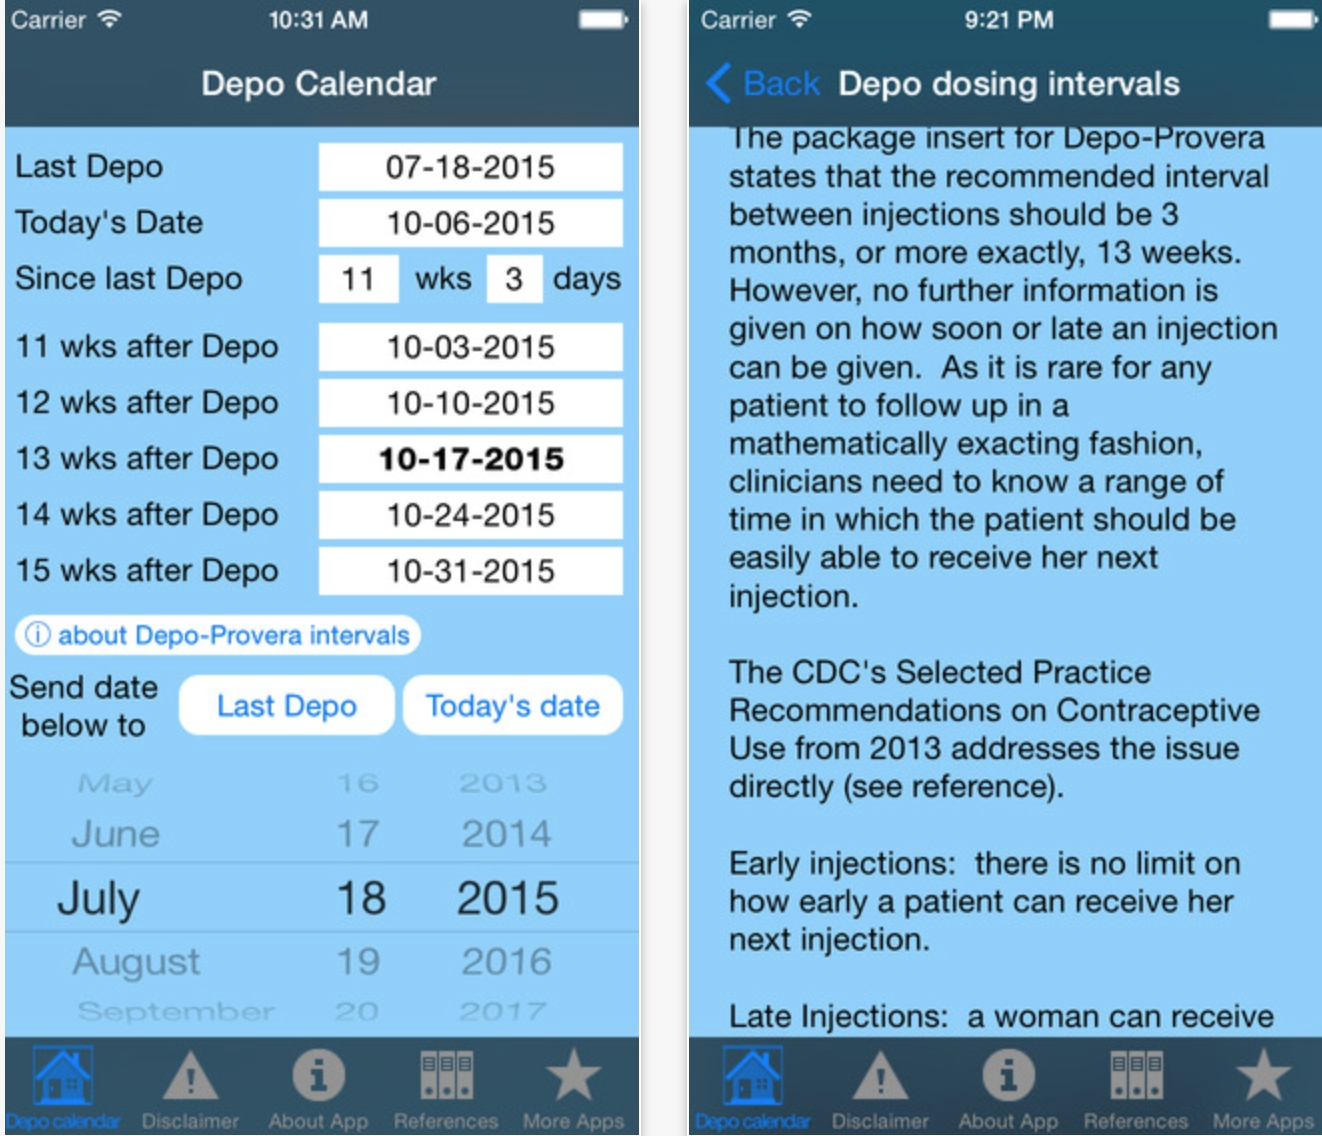 Depo Calendar App Could Significantly Improve Contraception  Depoprovera Injection Calculator